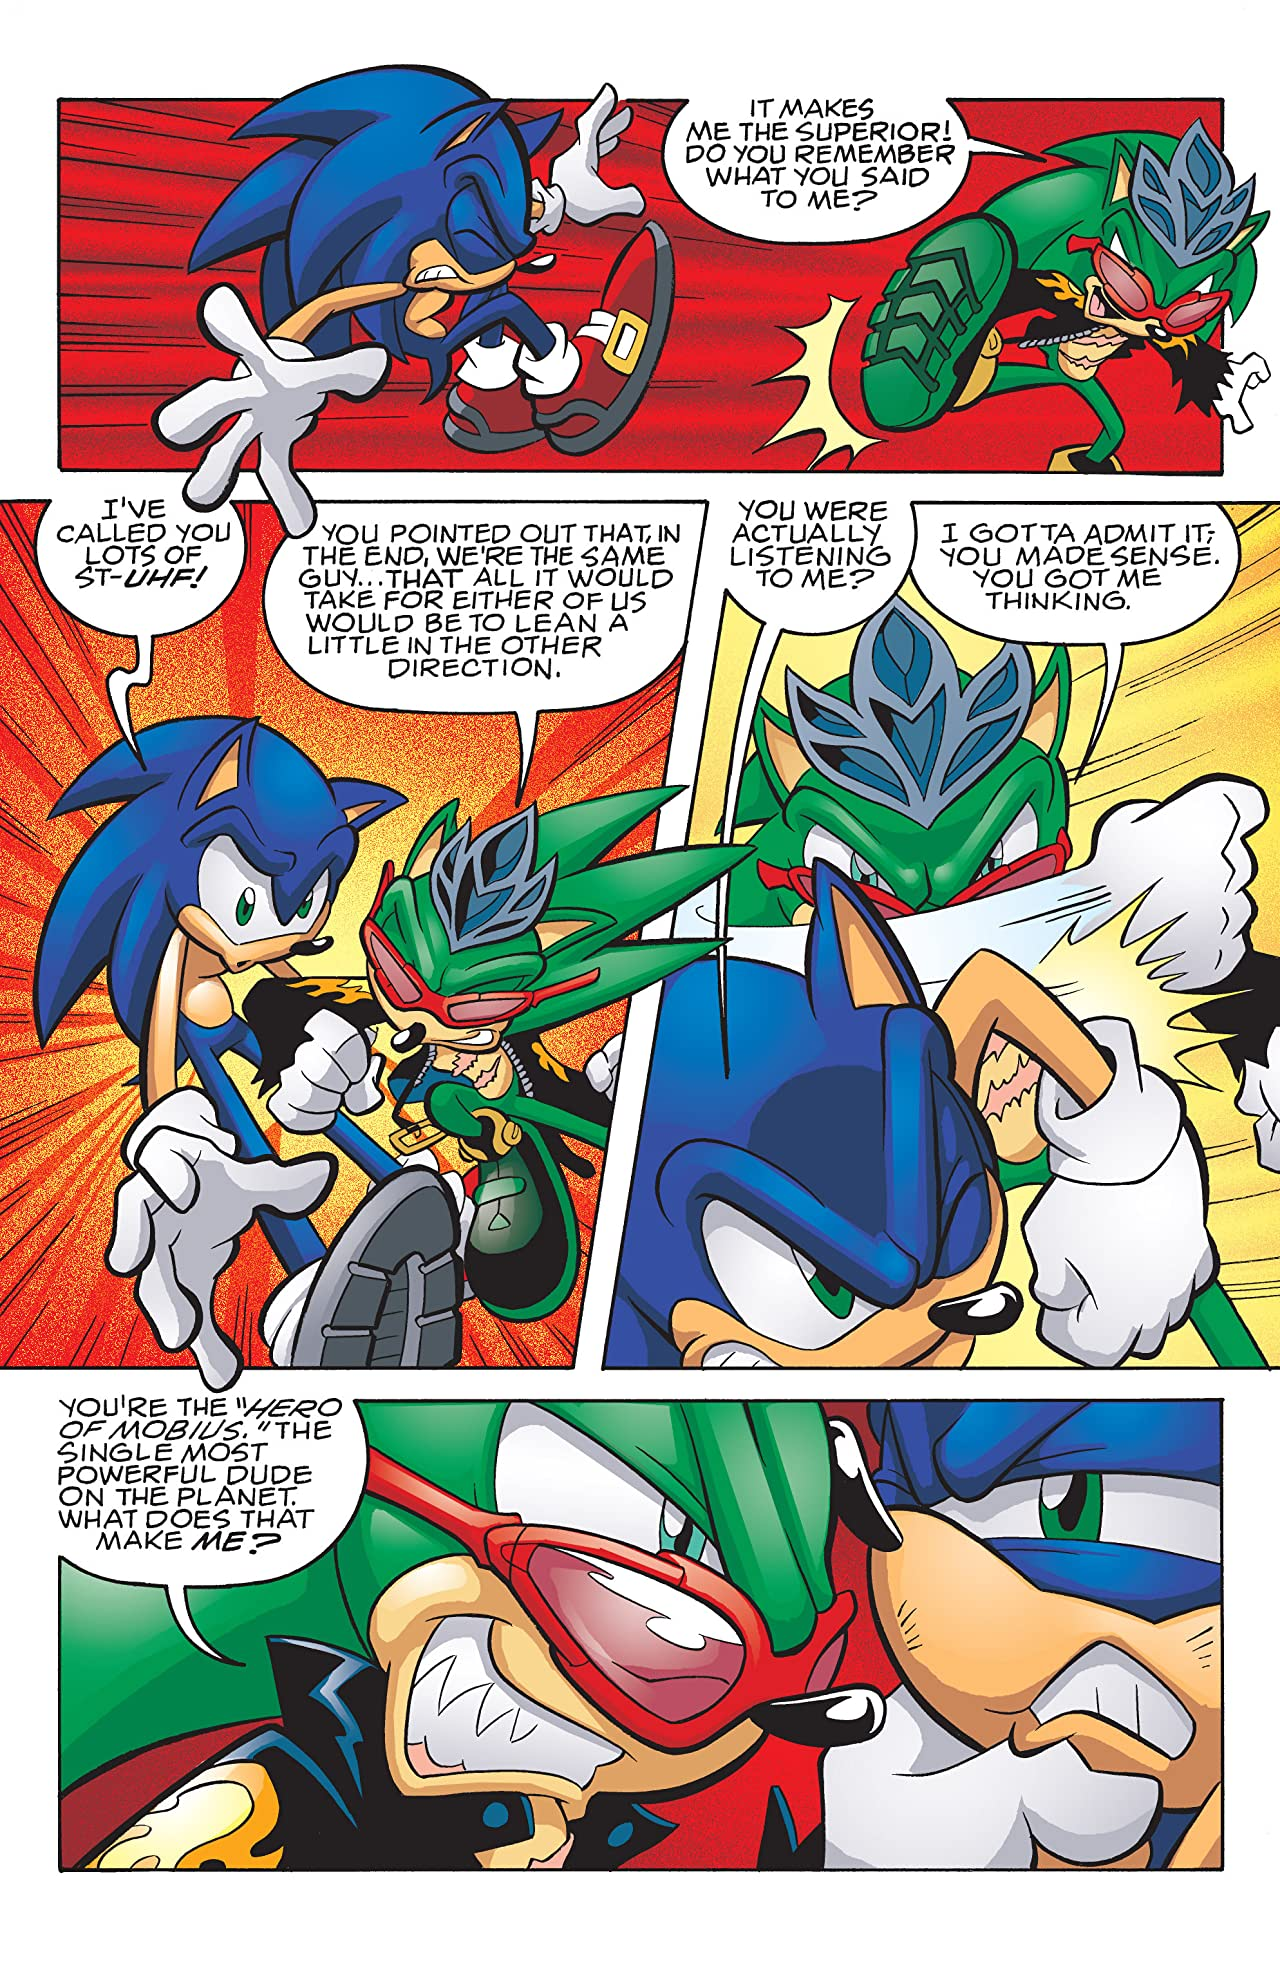 Sonic the Hedgehog #190